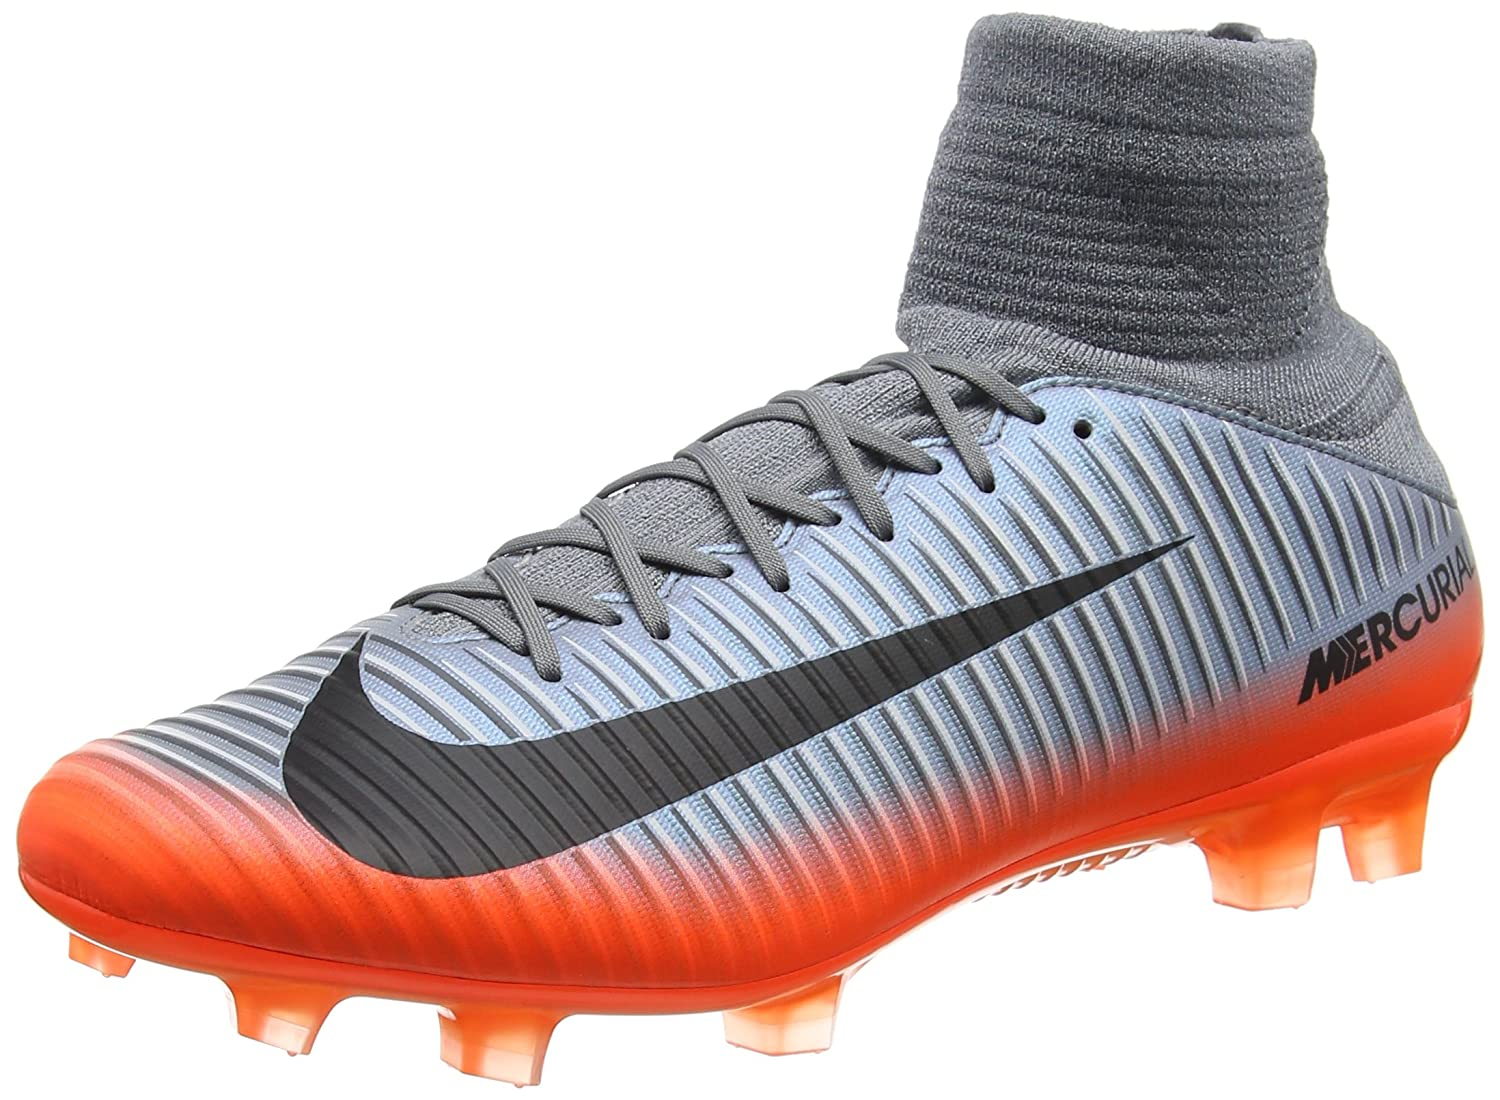 c12f737b Amazon.com | Nike Mercurial Veloce III DF CR7 FG 852518-001 Grey/Hematite  Men's Soccer Cleats | Soccer